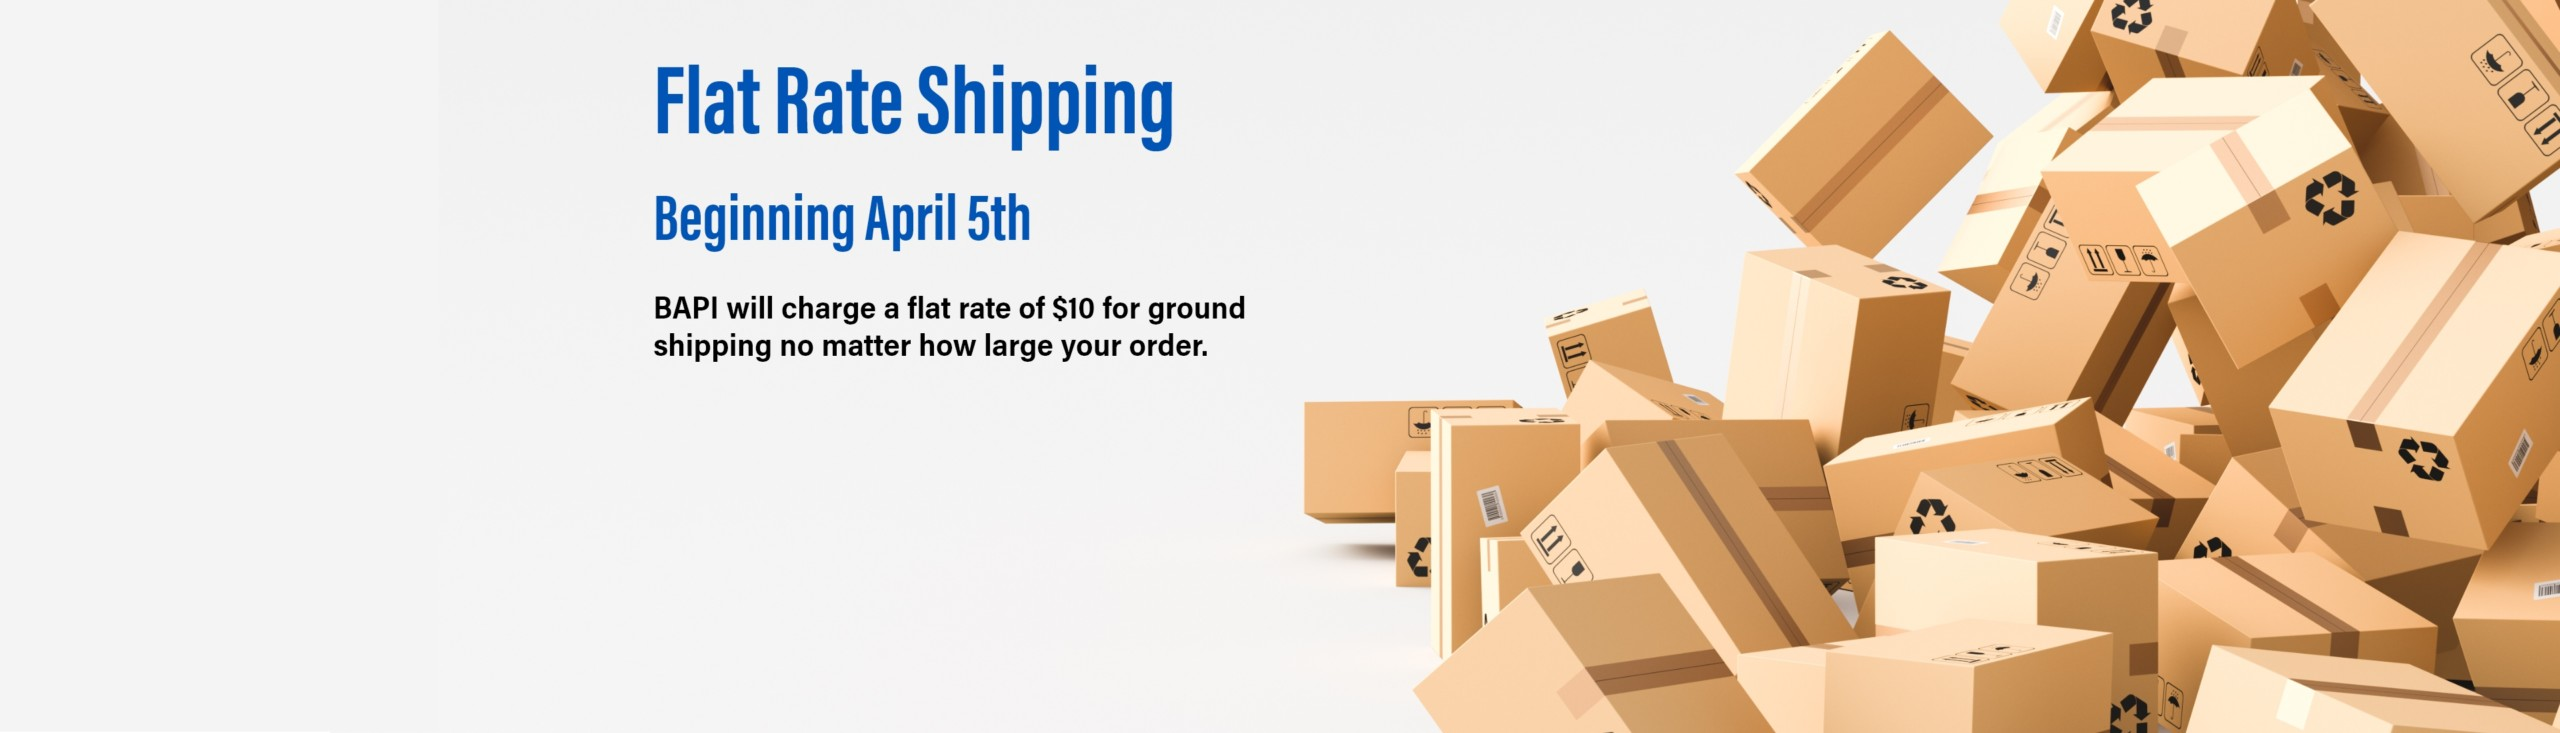 flat rate shipping starting April 5th, $10 for ground shipping in the contiguous US no matter how big the order